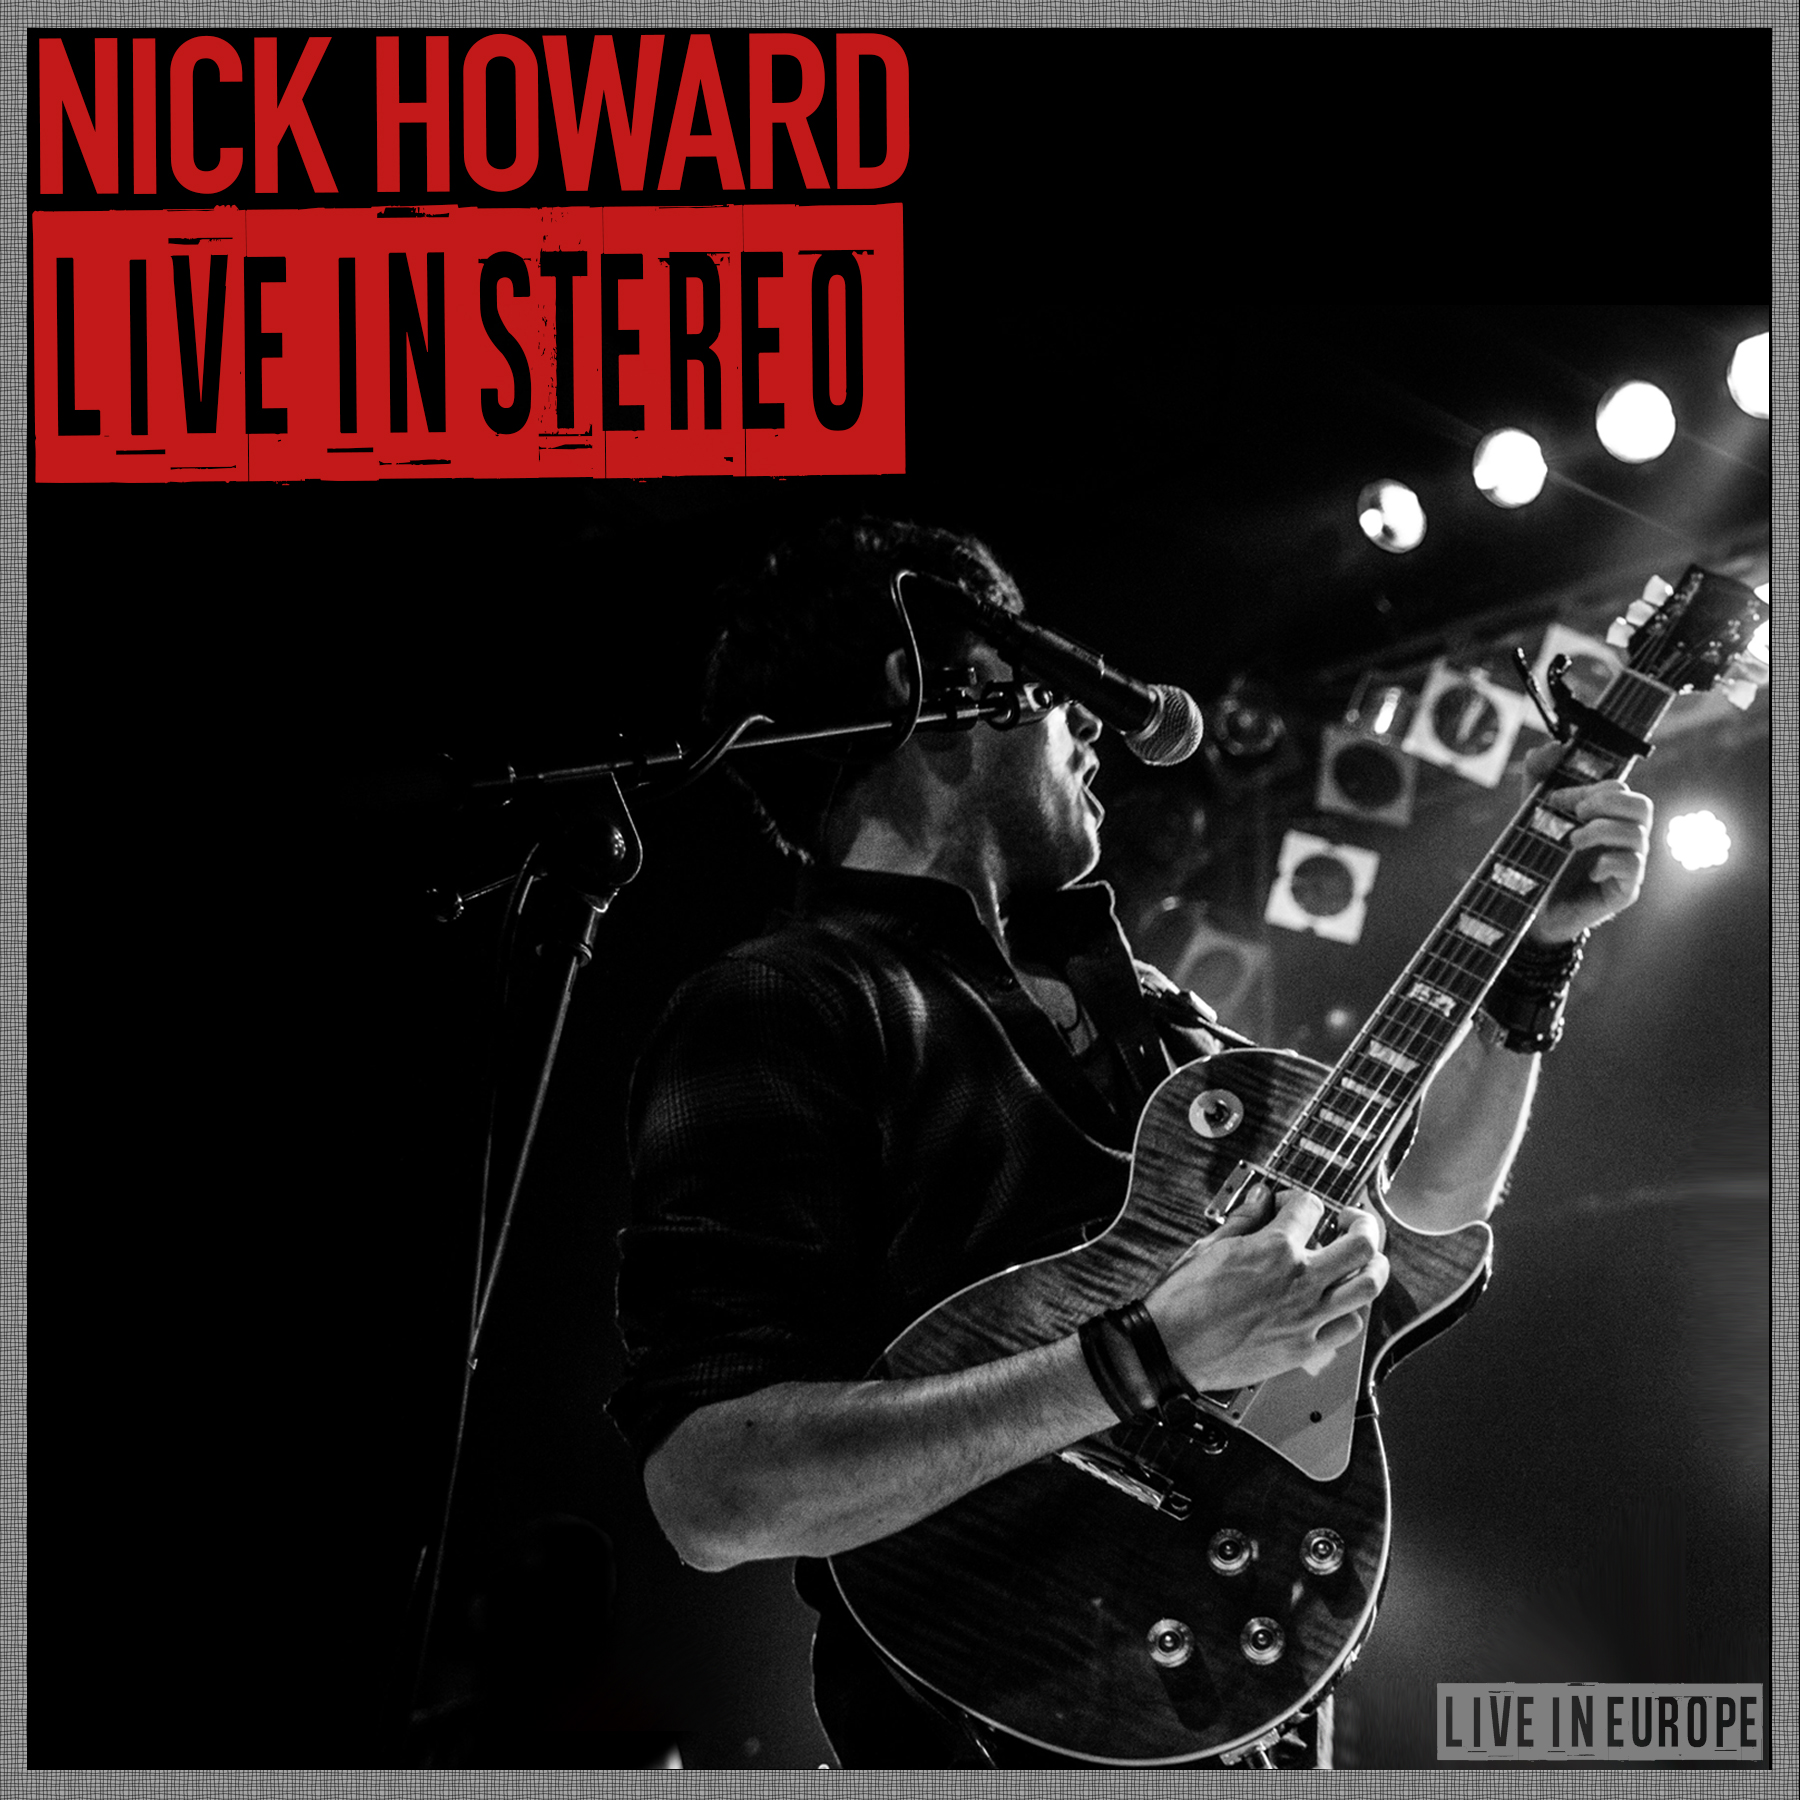 Nick Howard - Live in Stereo